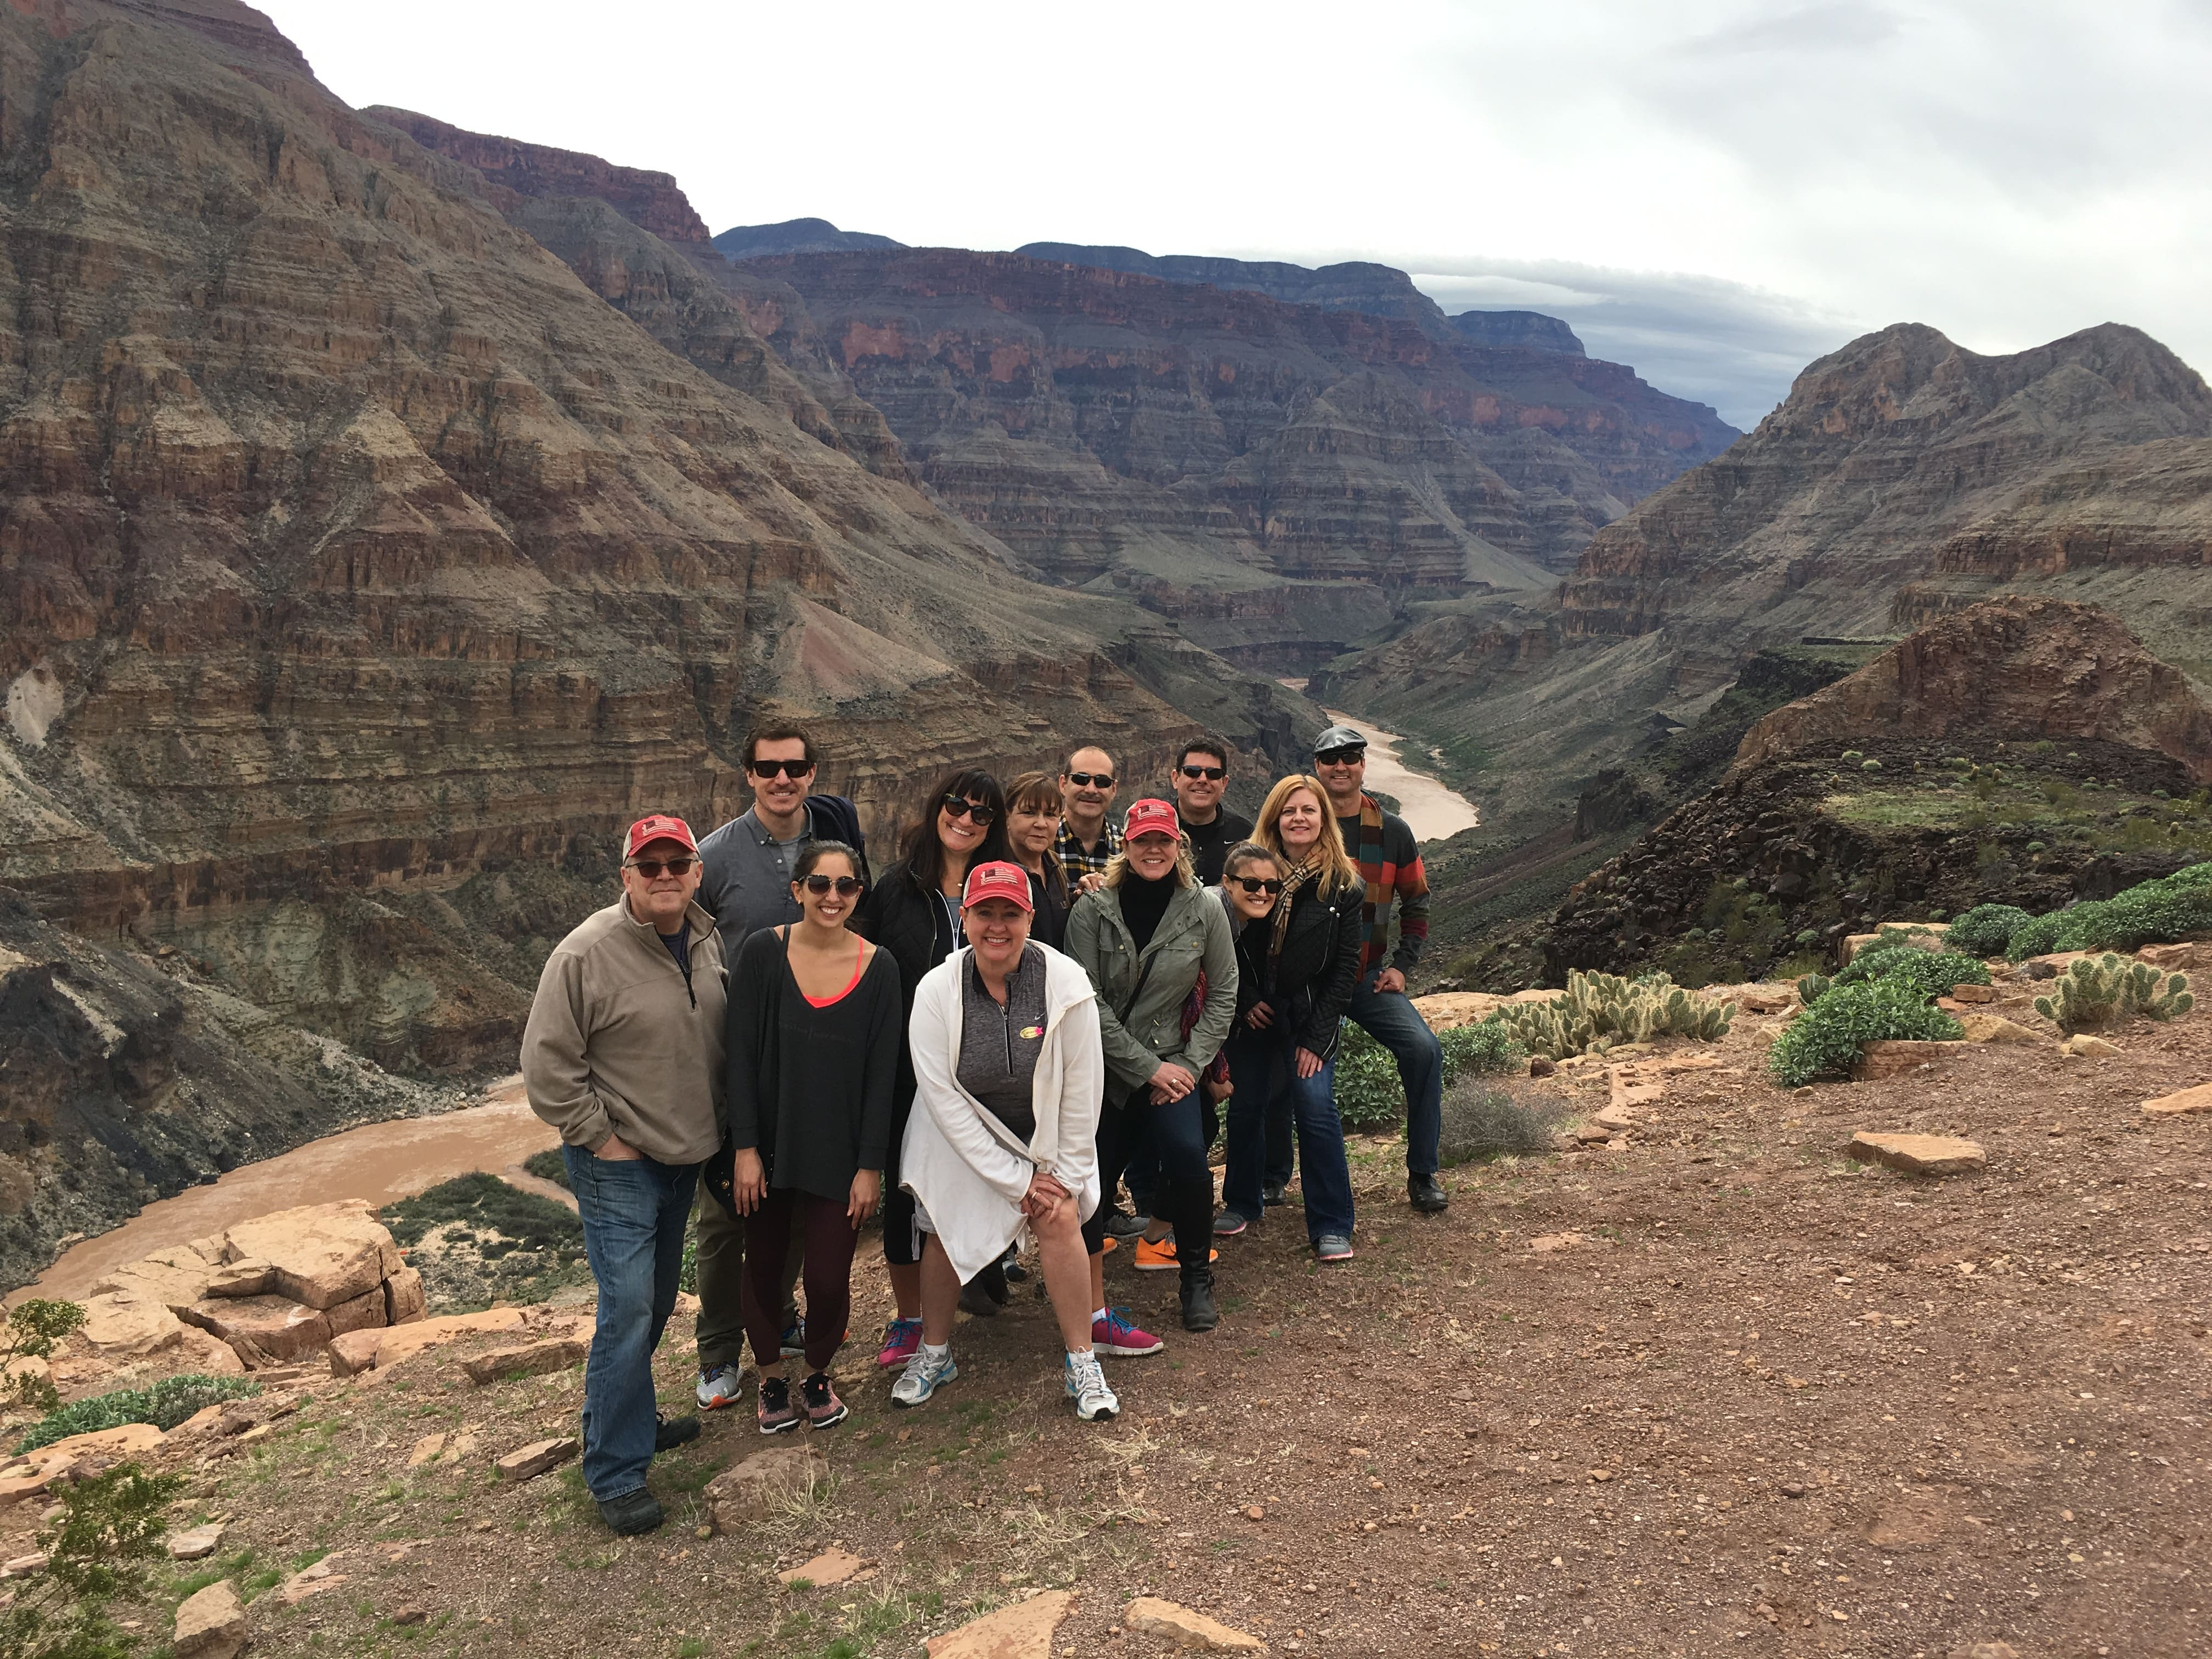 NCAE Board of Advisors' Outing to the Grand Canyon